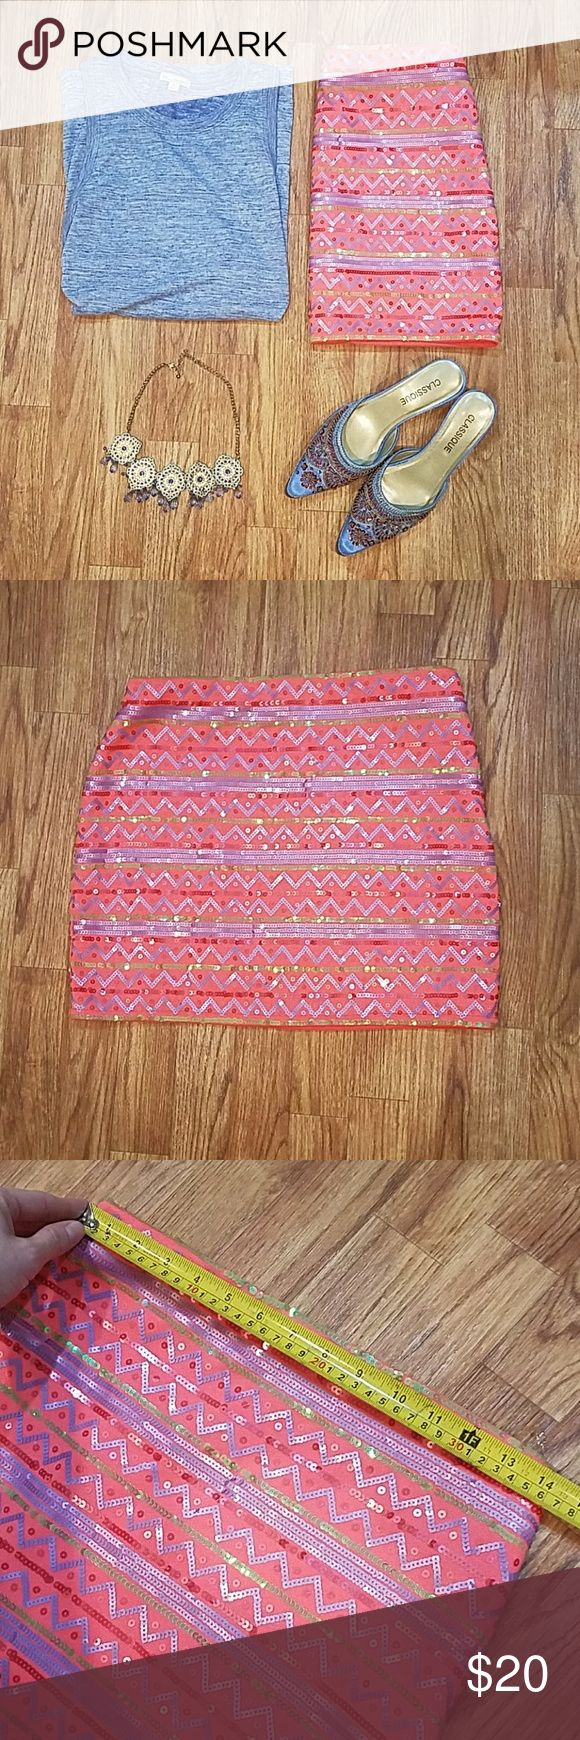 Pink Pattern Sequined Mini skirt Lined EUC Excellent condition. See photos for measurements. Zips and hooks up the side- Hidden in seam. Cute for spring. miami Skirts Mini